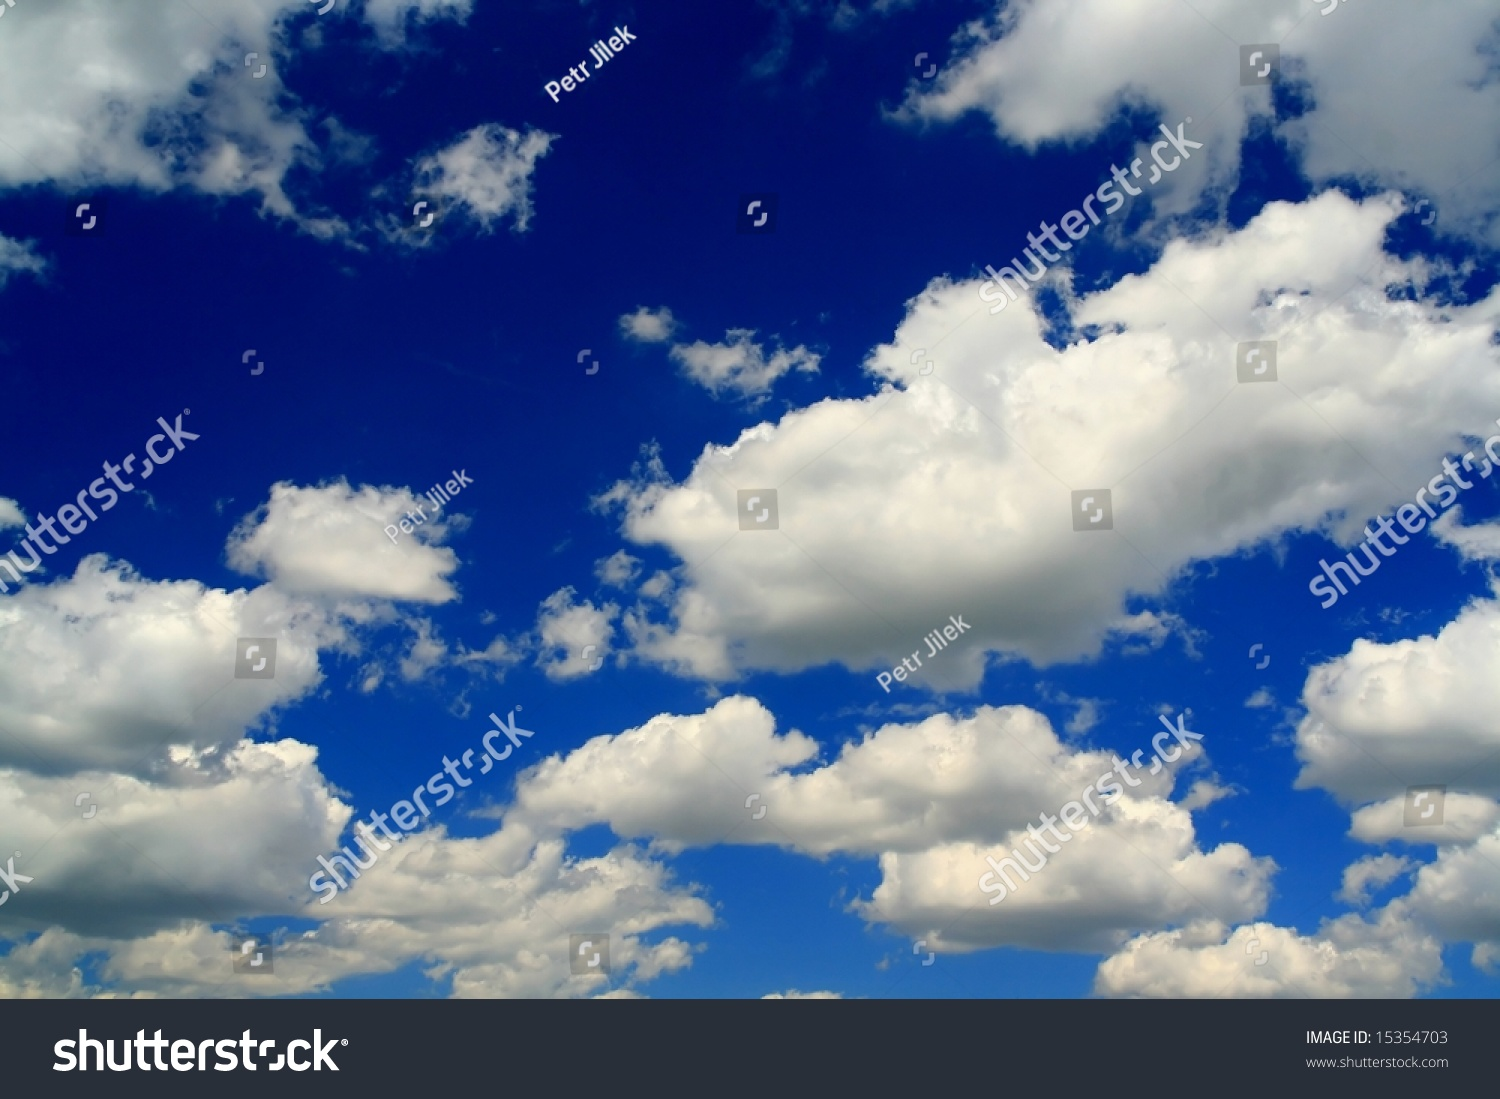 Plain Blue Sky And Beauty White Clouds Stock Photo ...